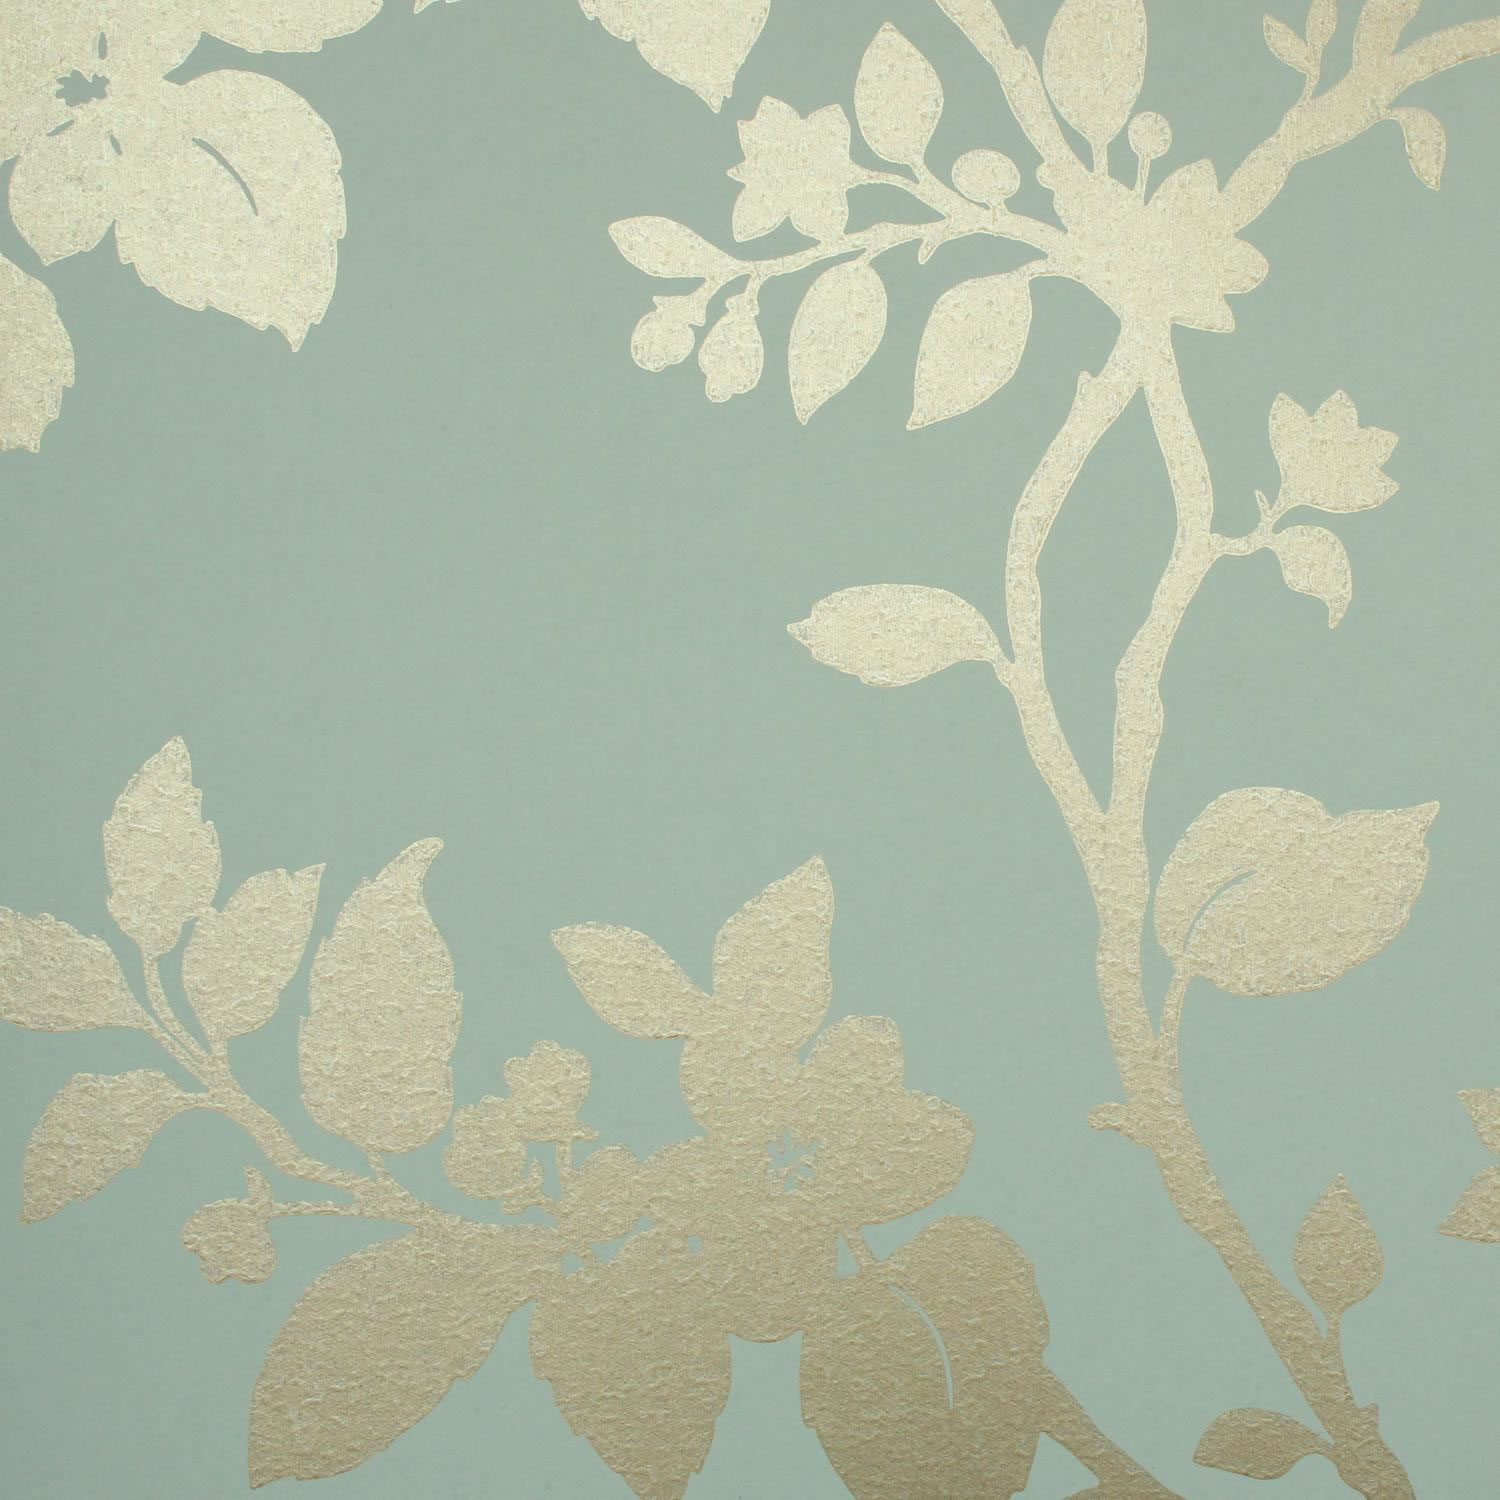 Carlucci di Chivasso Cult Wallpaper in Duck Egg 10m Roll Next Day. ← Wallpaper Retailers UK